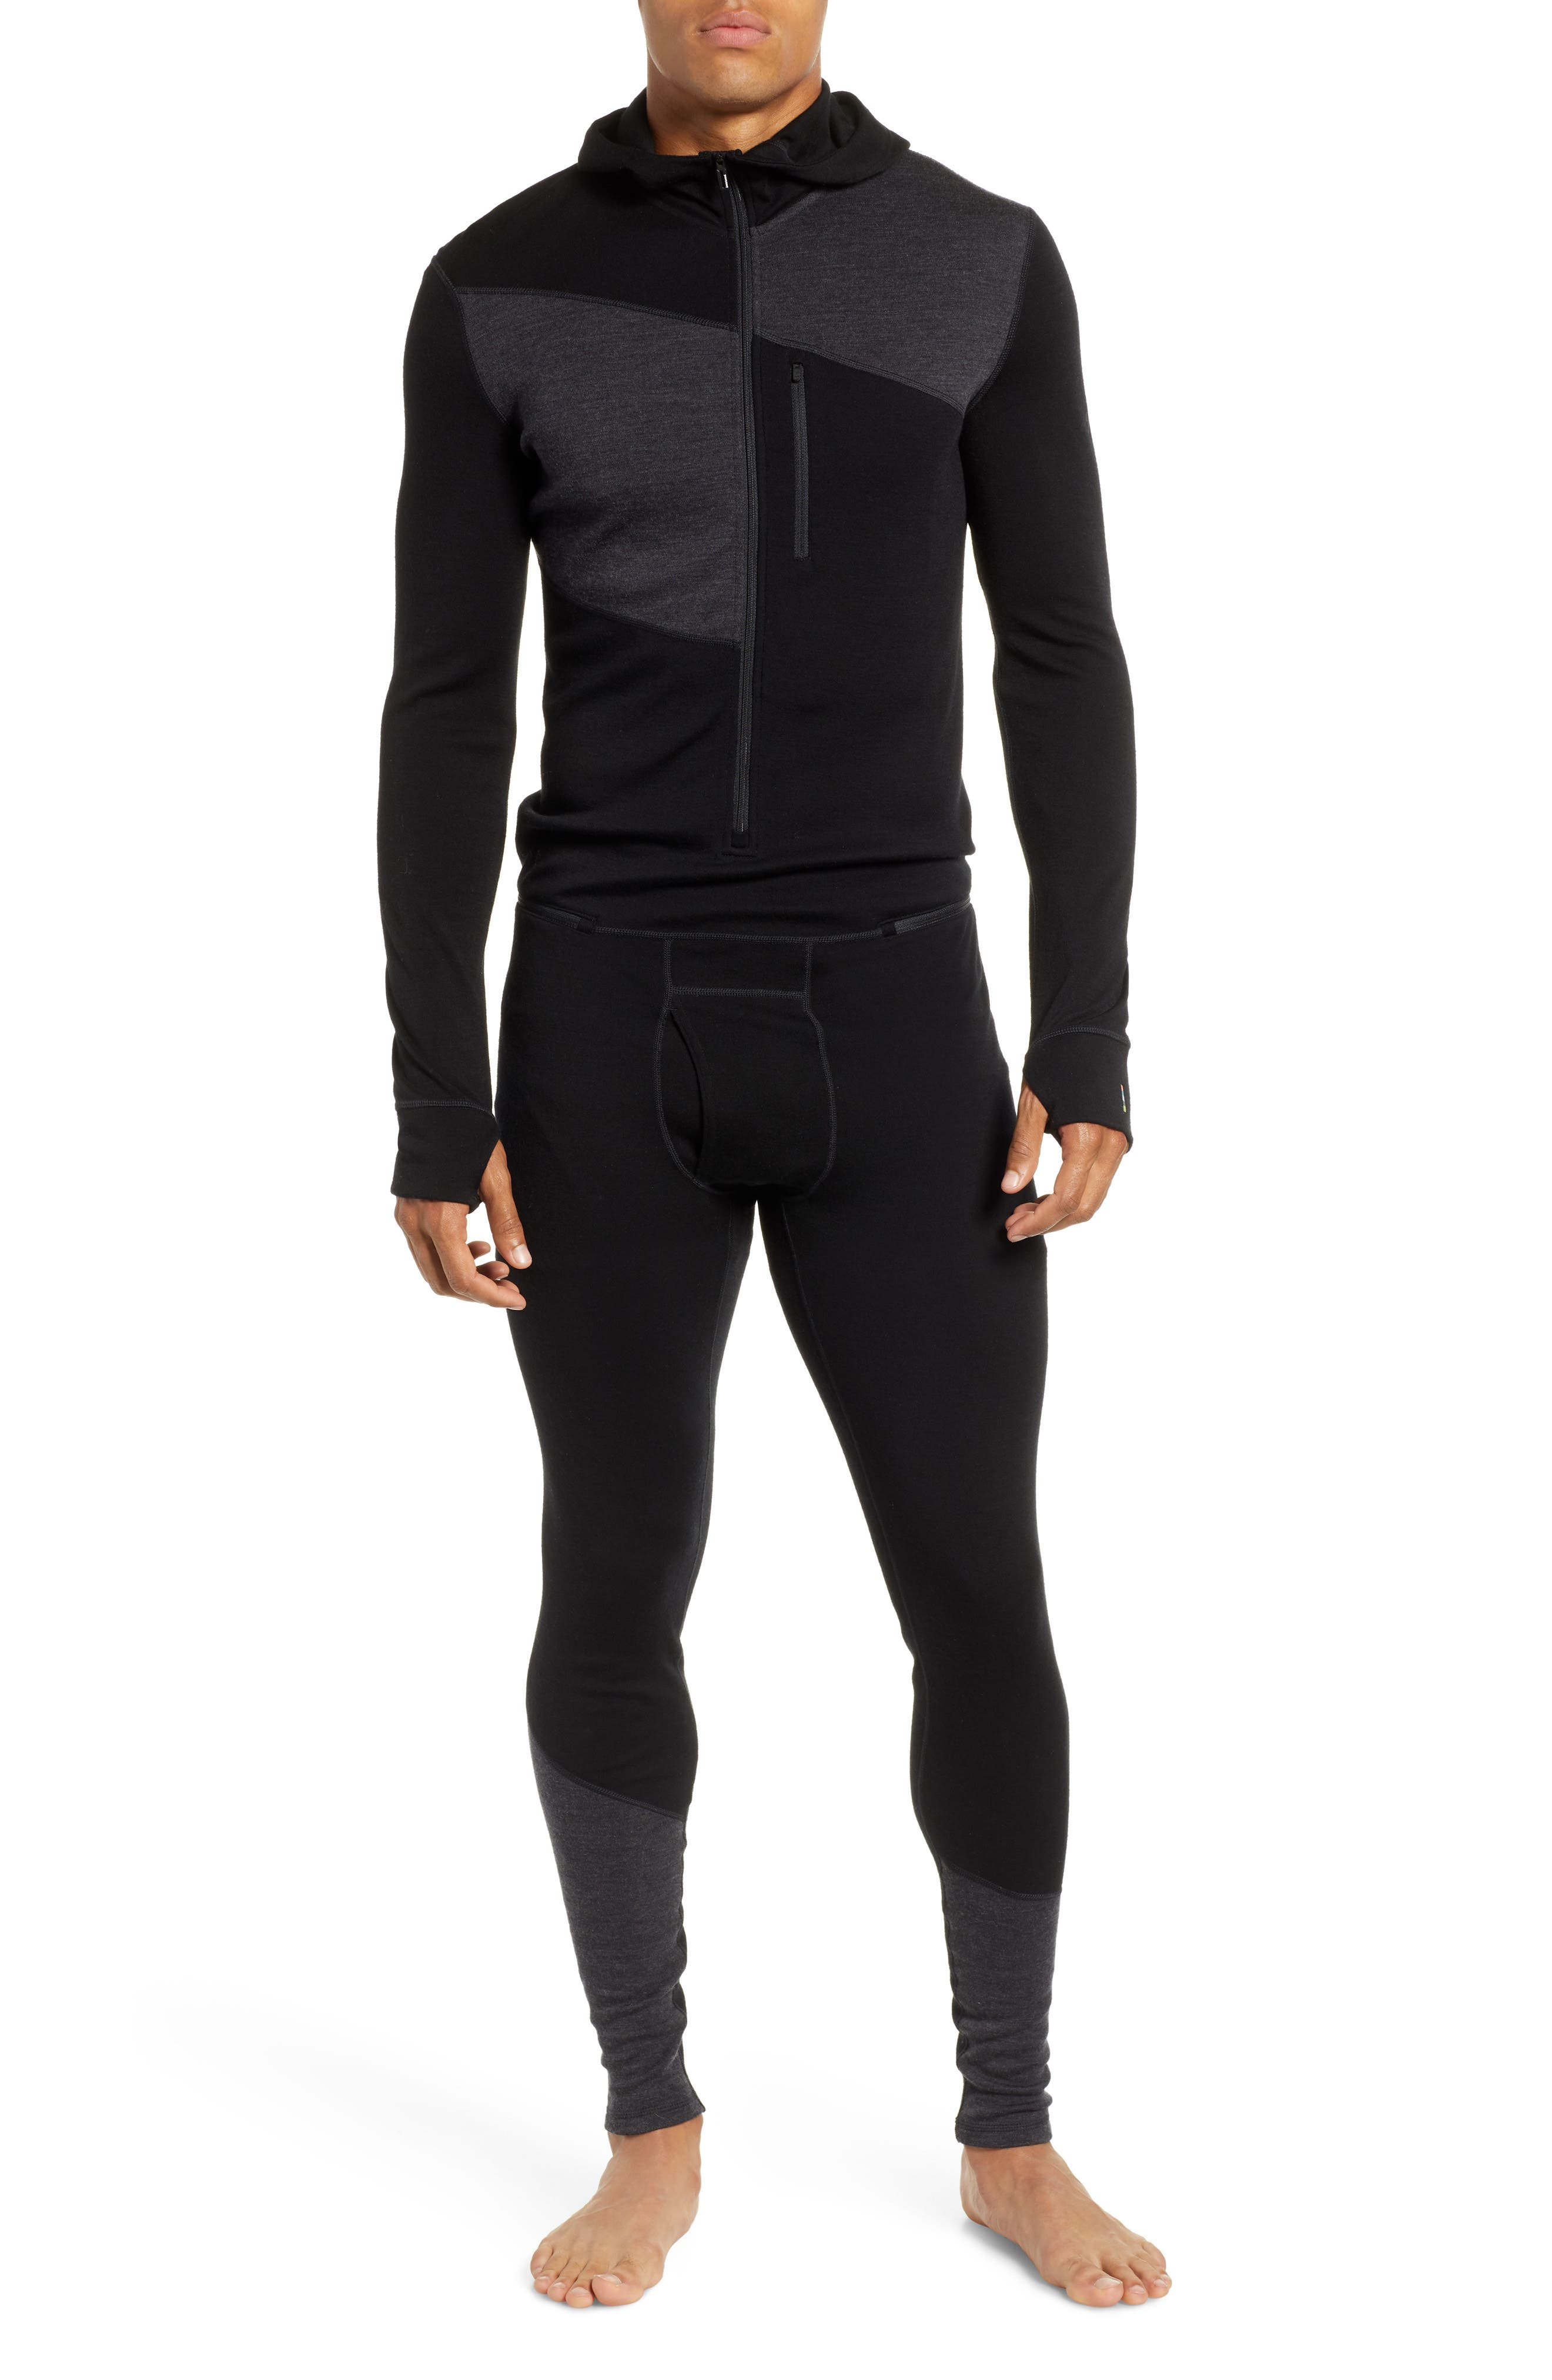 Smartwool Merino 250 Hooded One-Piece Base Layer, Black